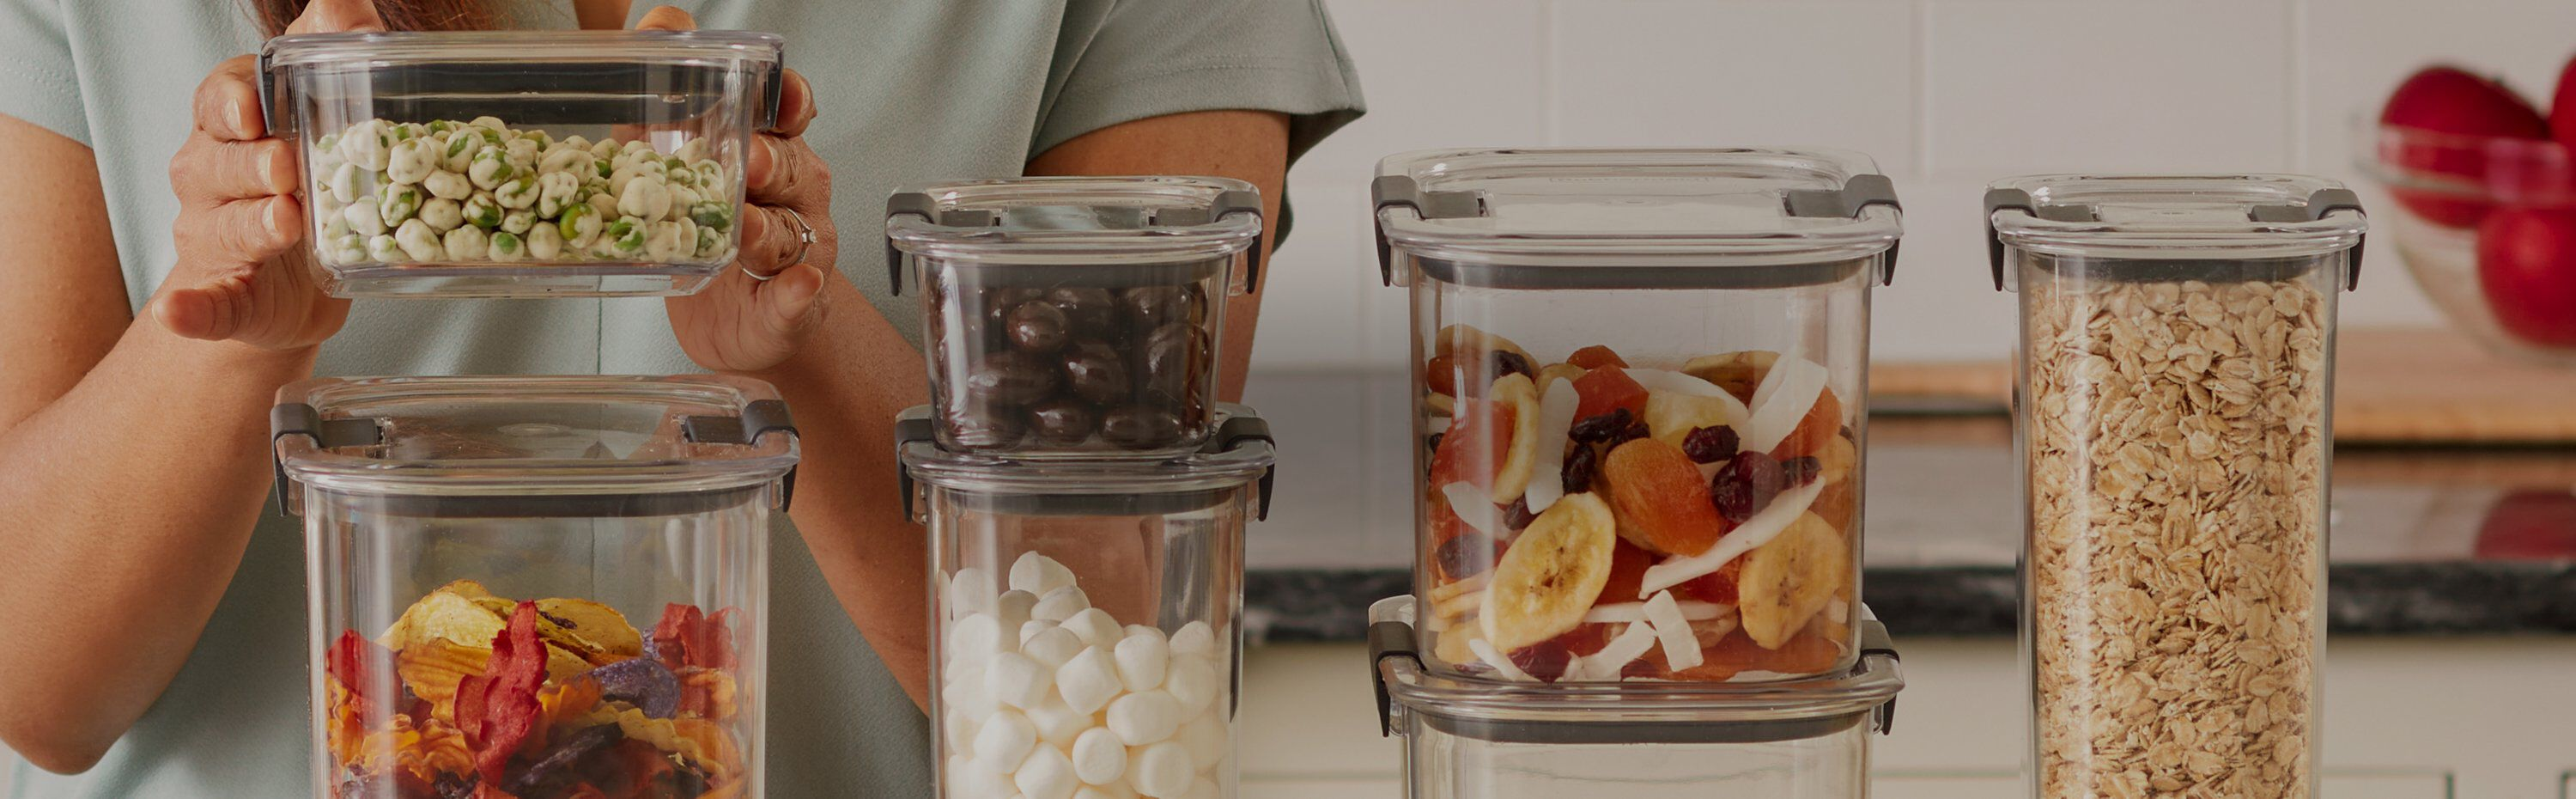 Clear containers with lids